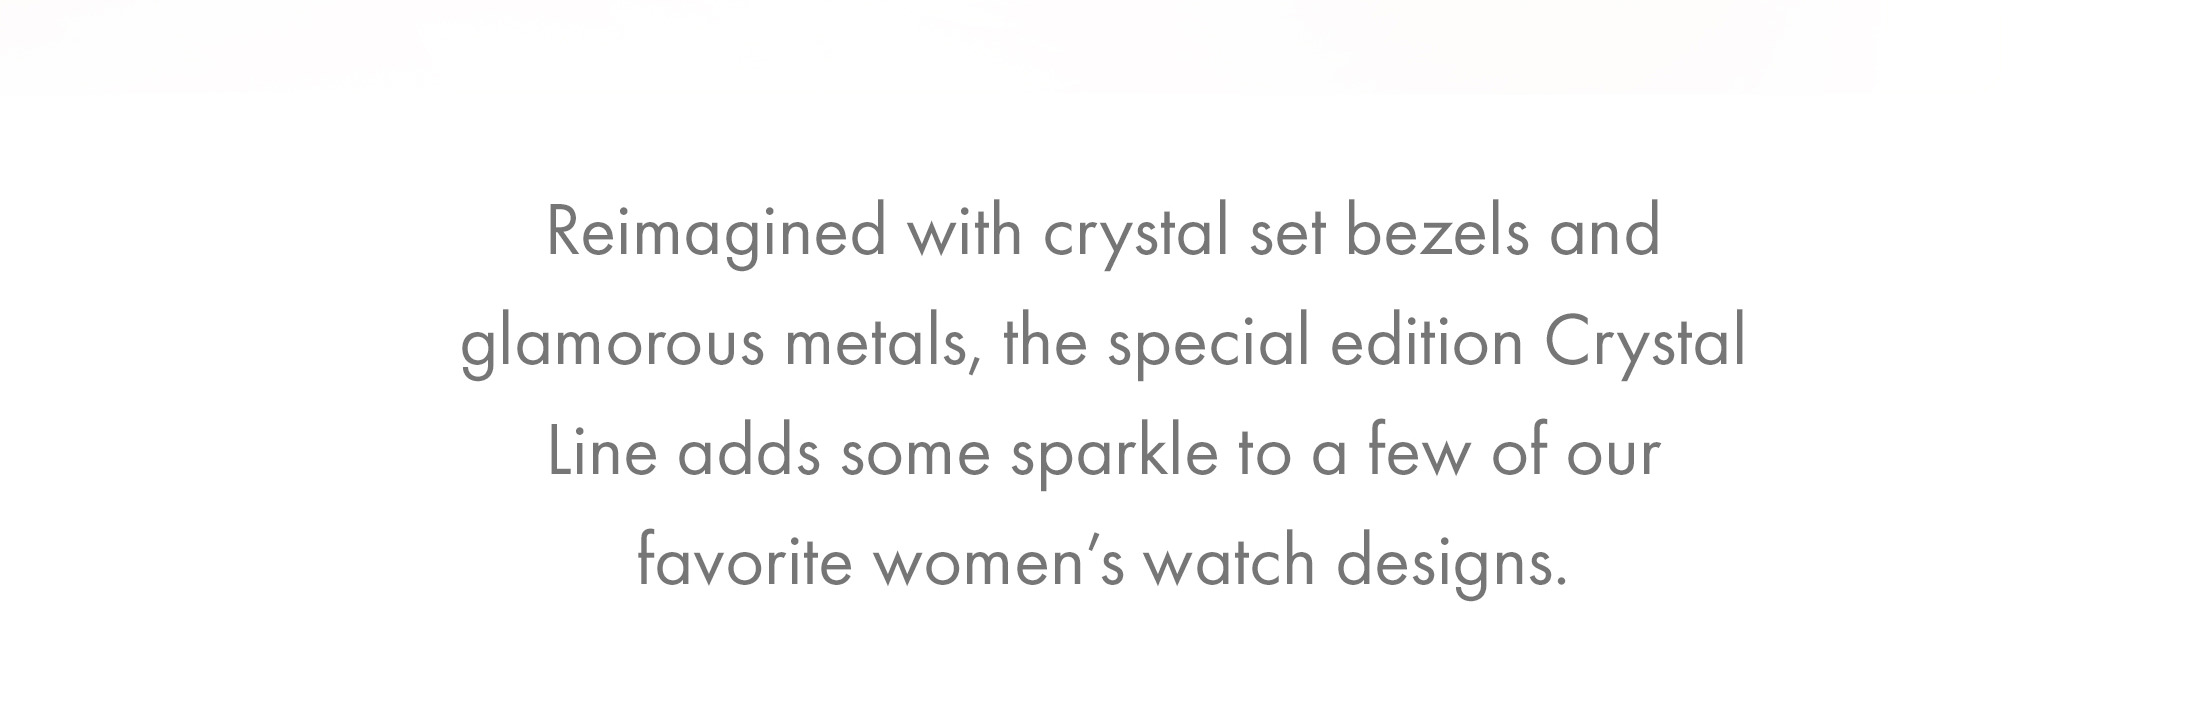 Reimagined with crystal set bezels and